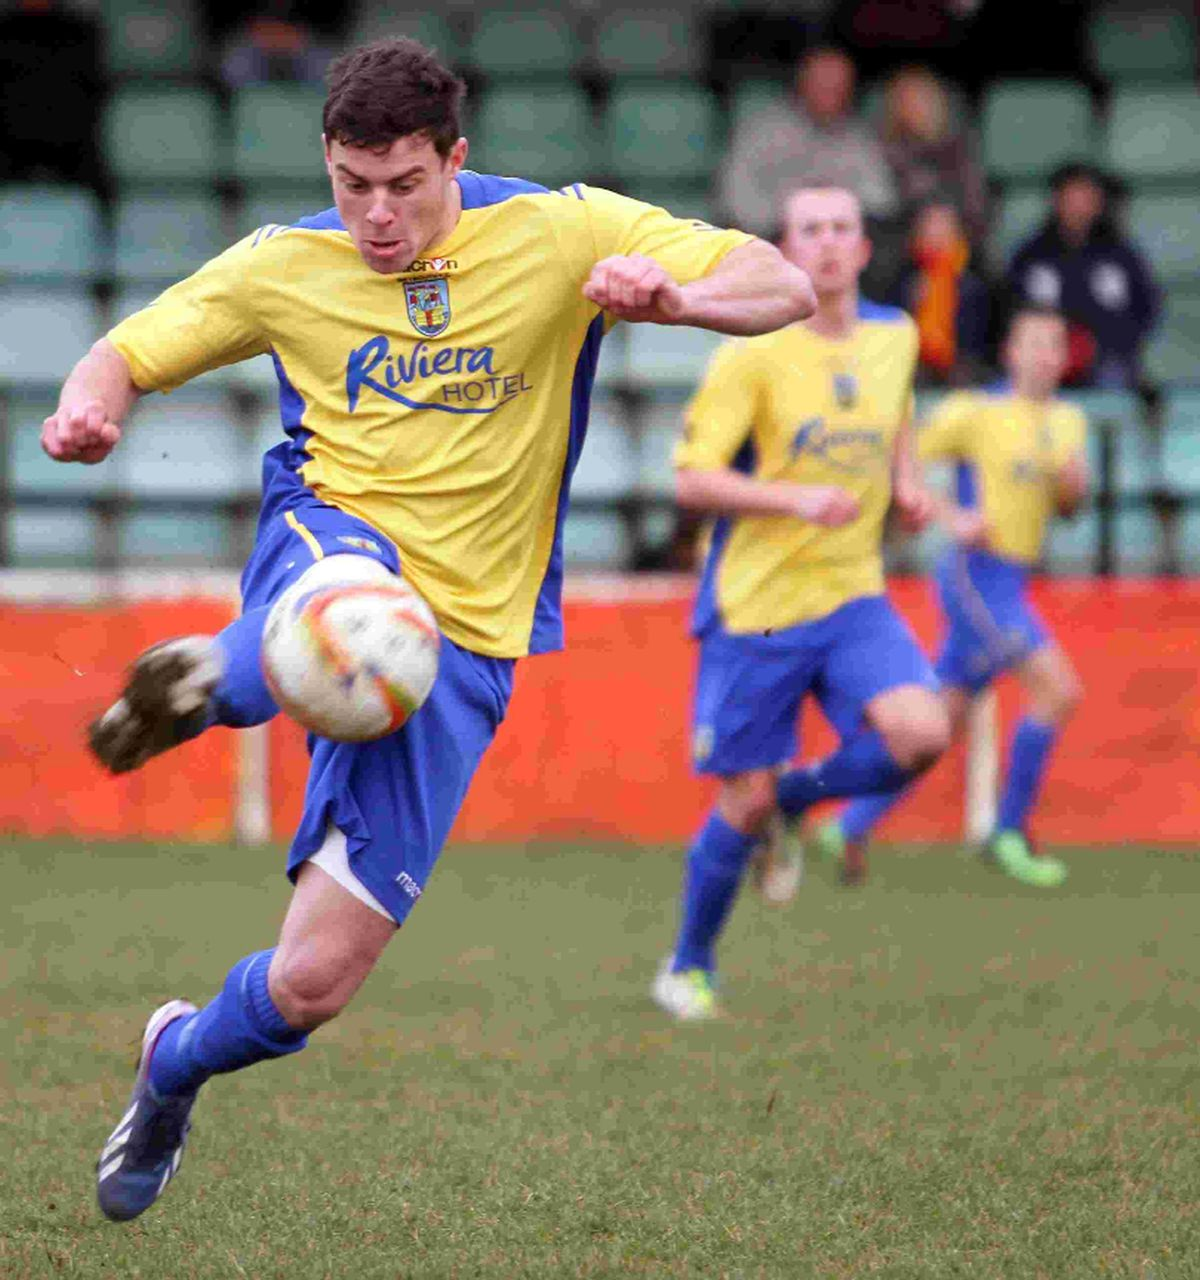 FLYING WINGER: Luke Burbidge